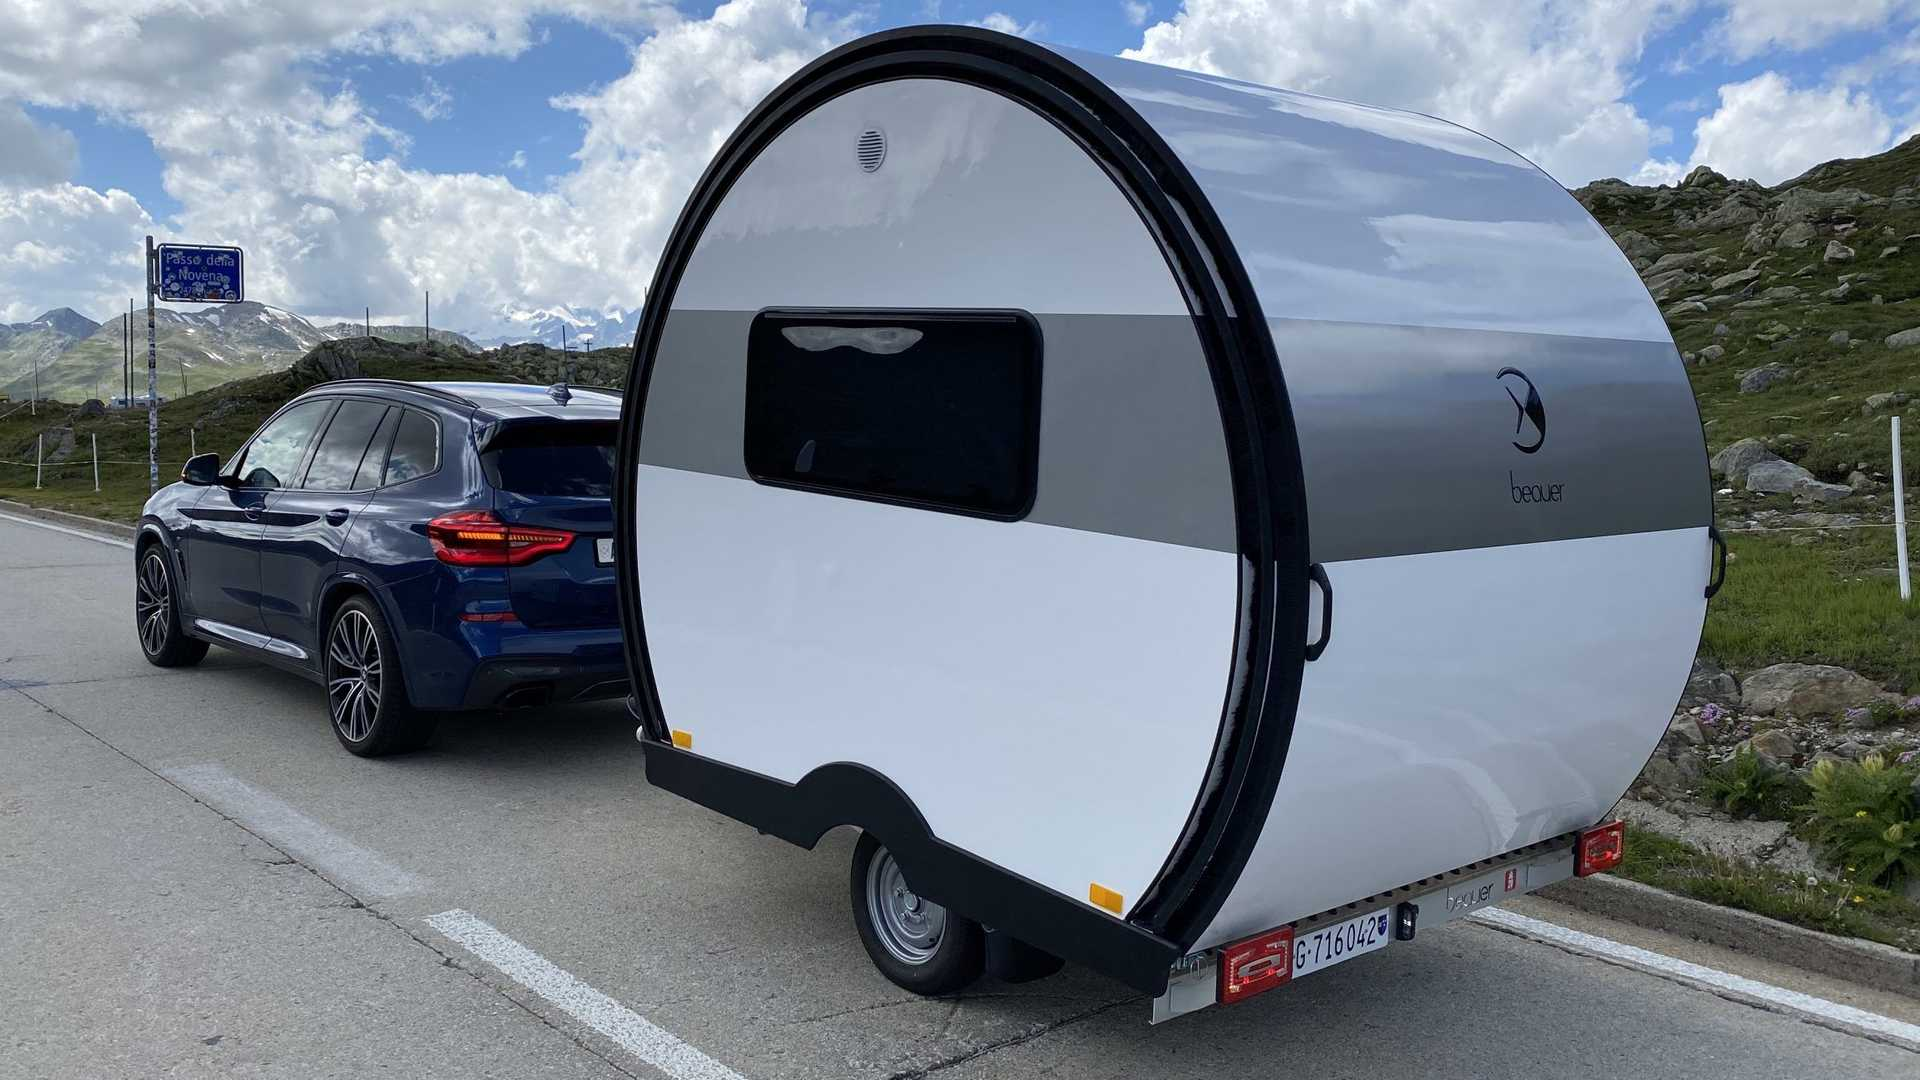 Amazing Compact Camper Trailer Expands To Three Times Its Size